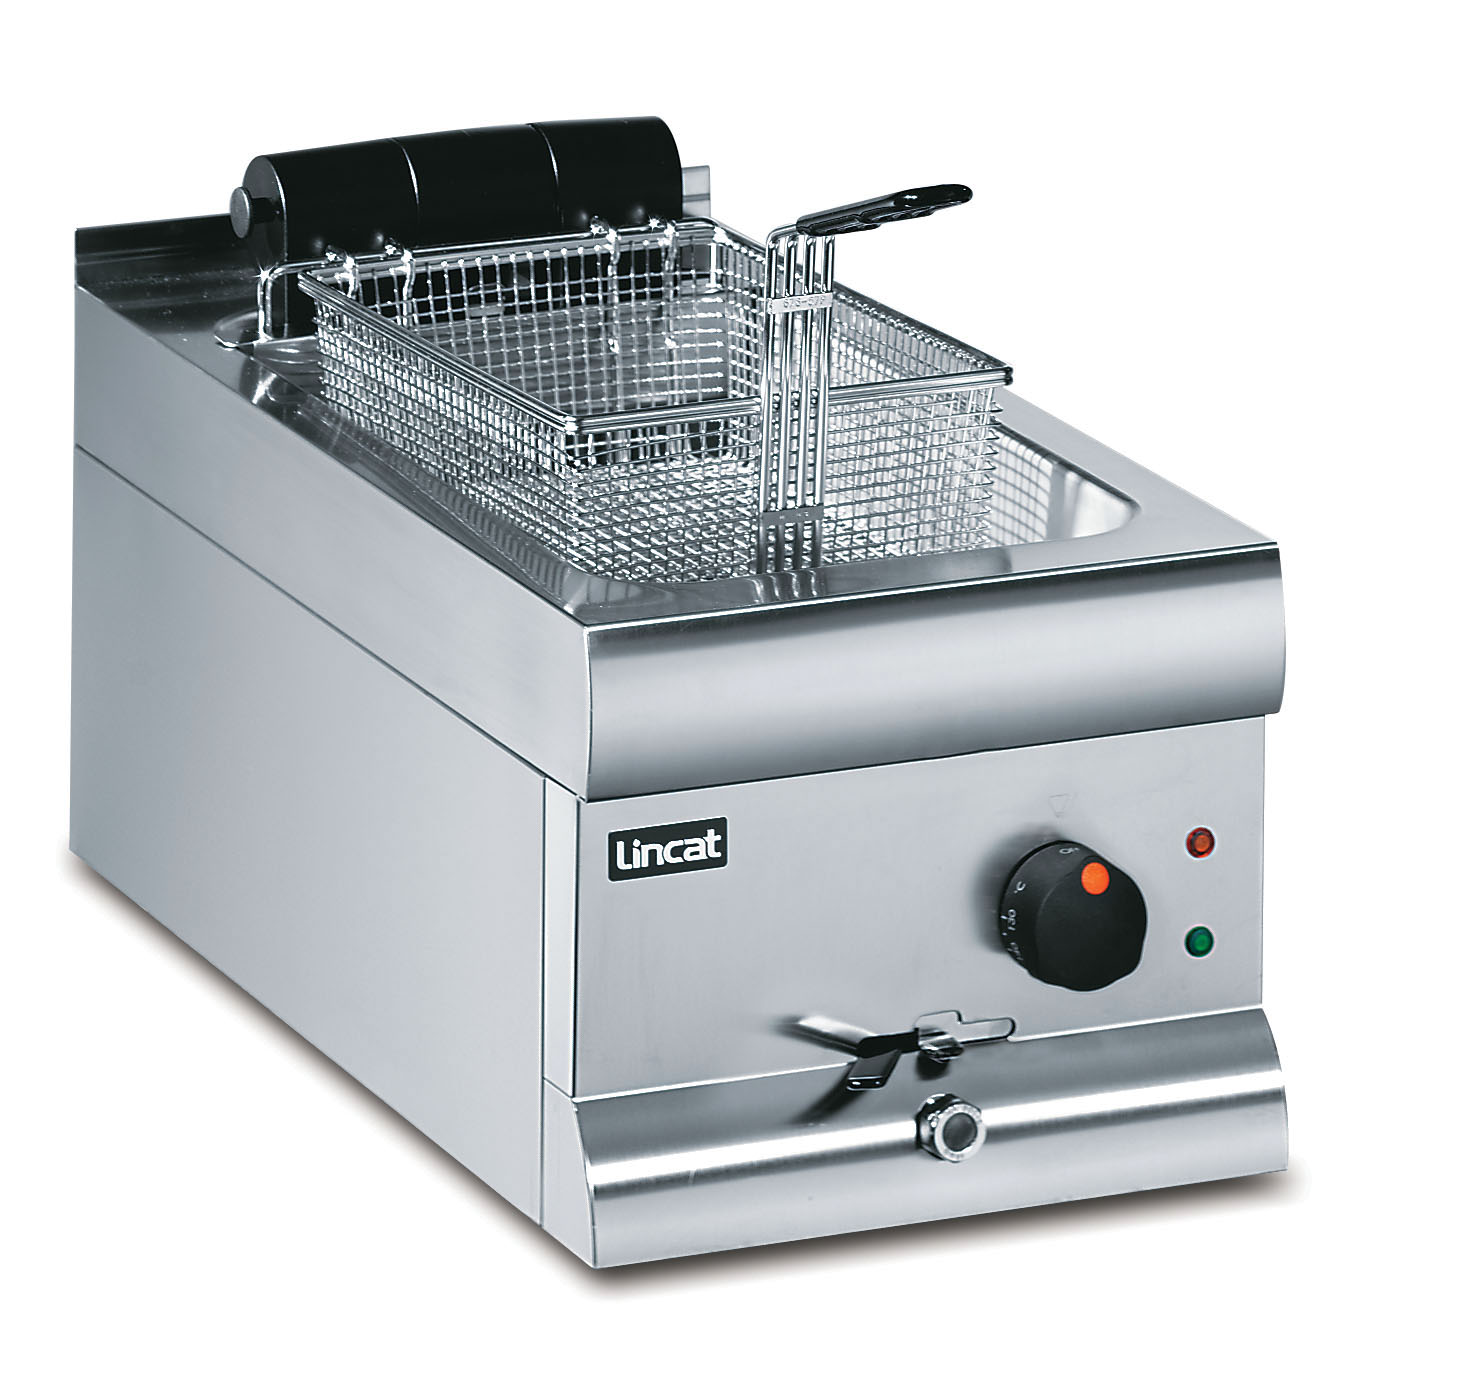 Commercial Countertop Dishwasher Commercial Countertop Fryers With Free Delivery Over 50